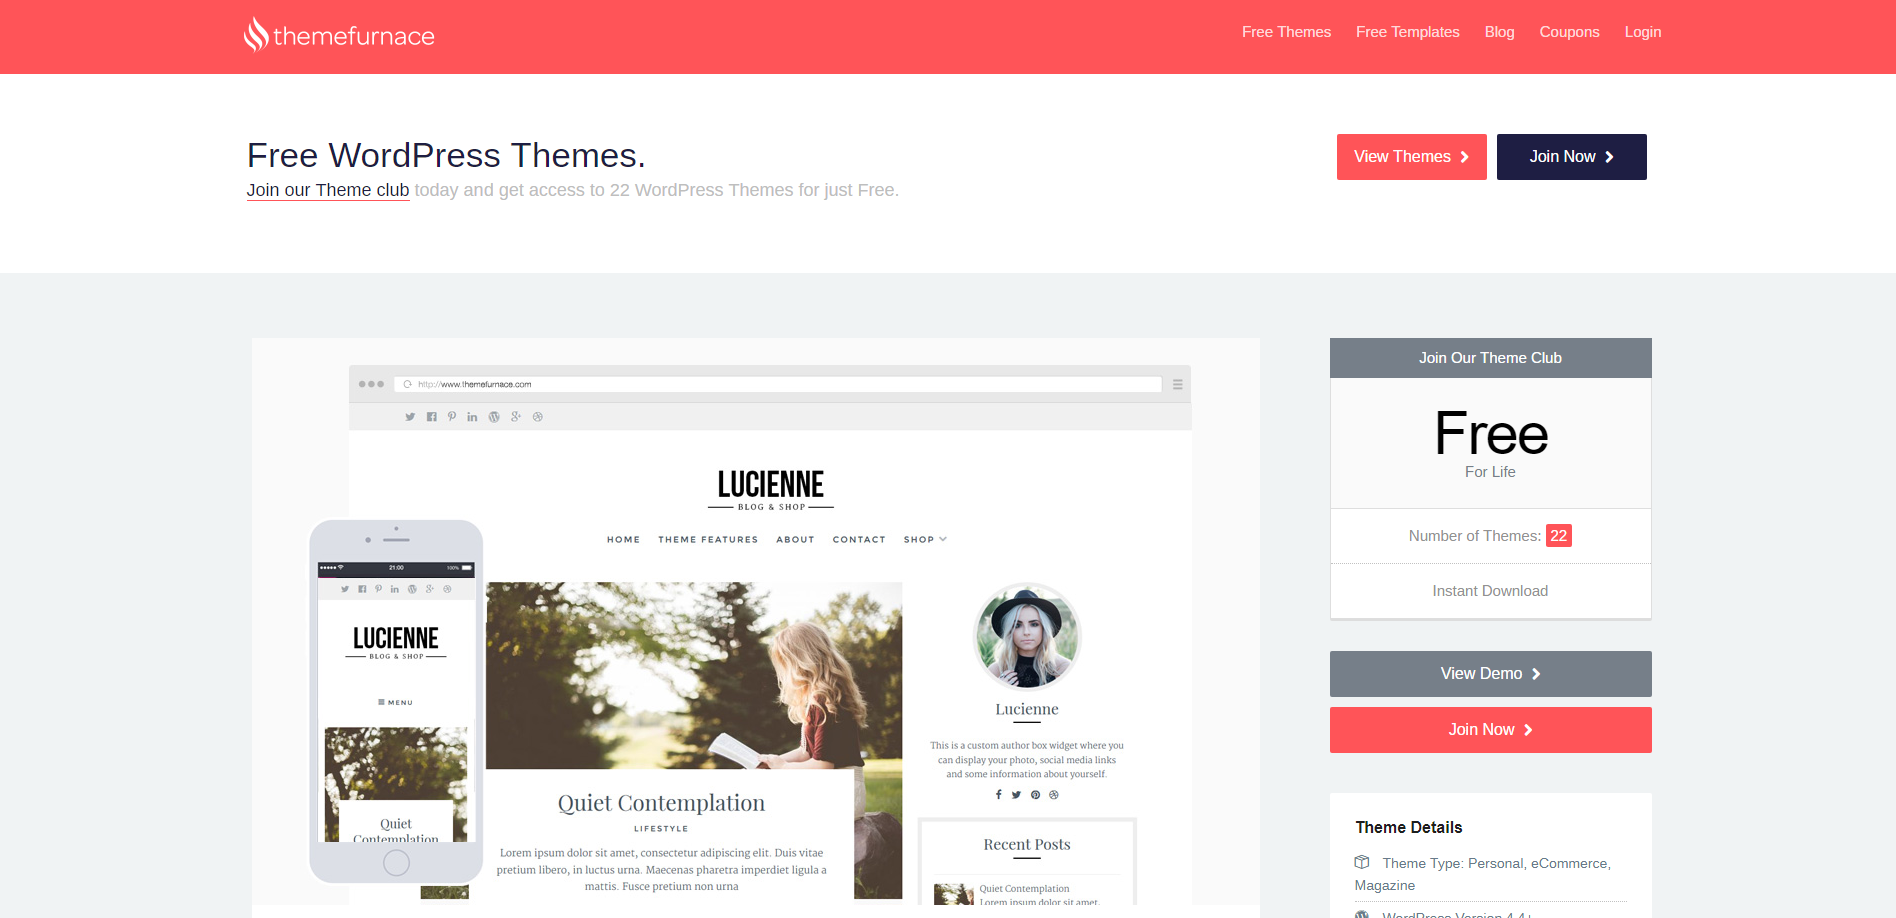 ThemeZee | 15 Places To Find The Best Free WordPress Themes